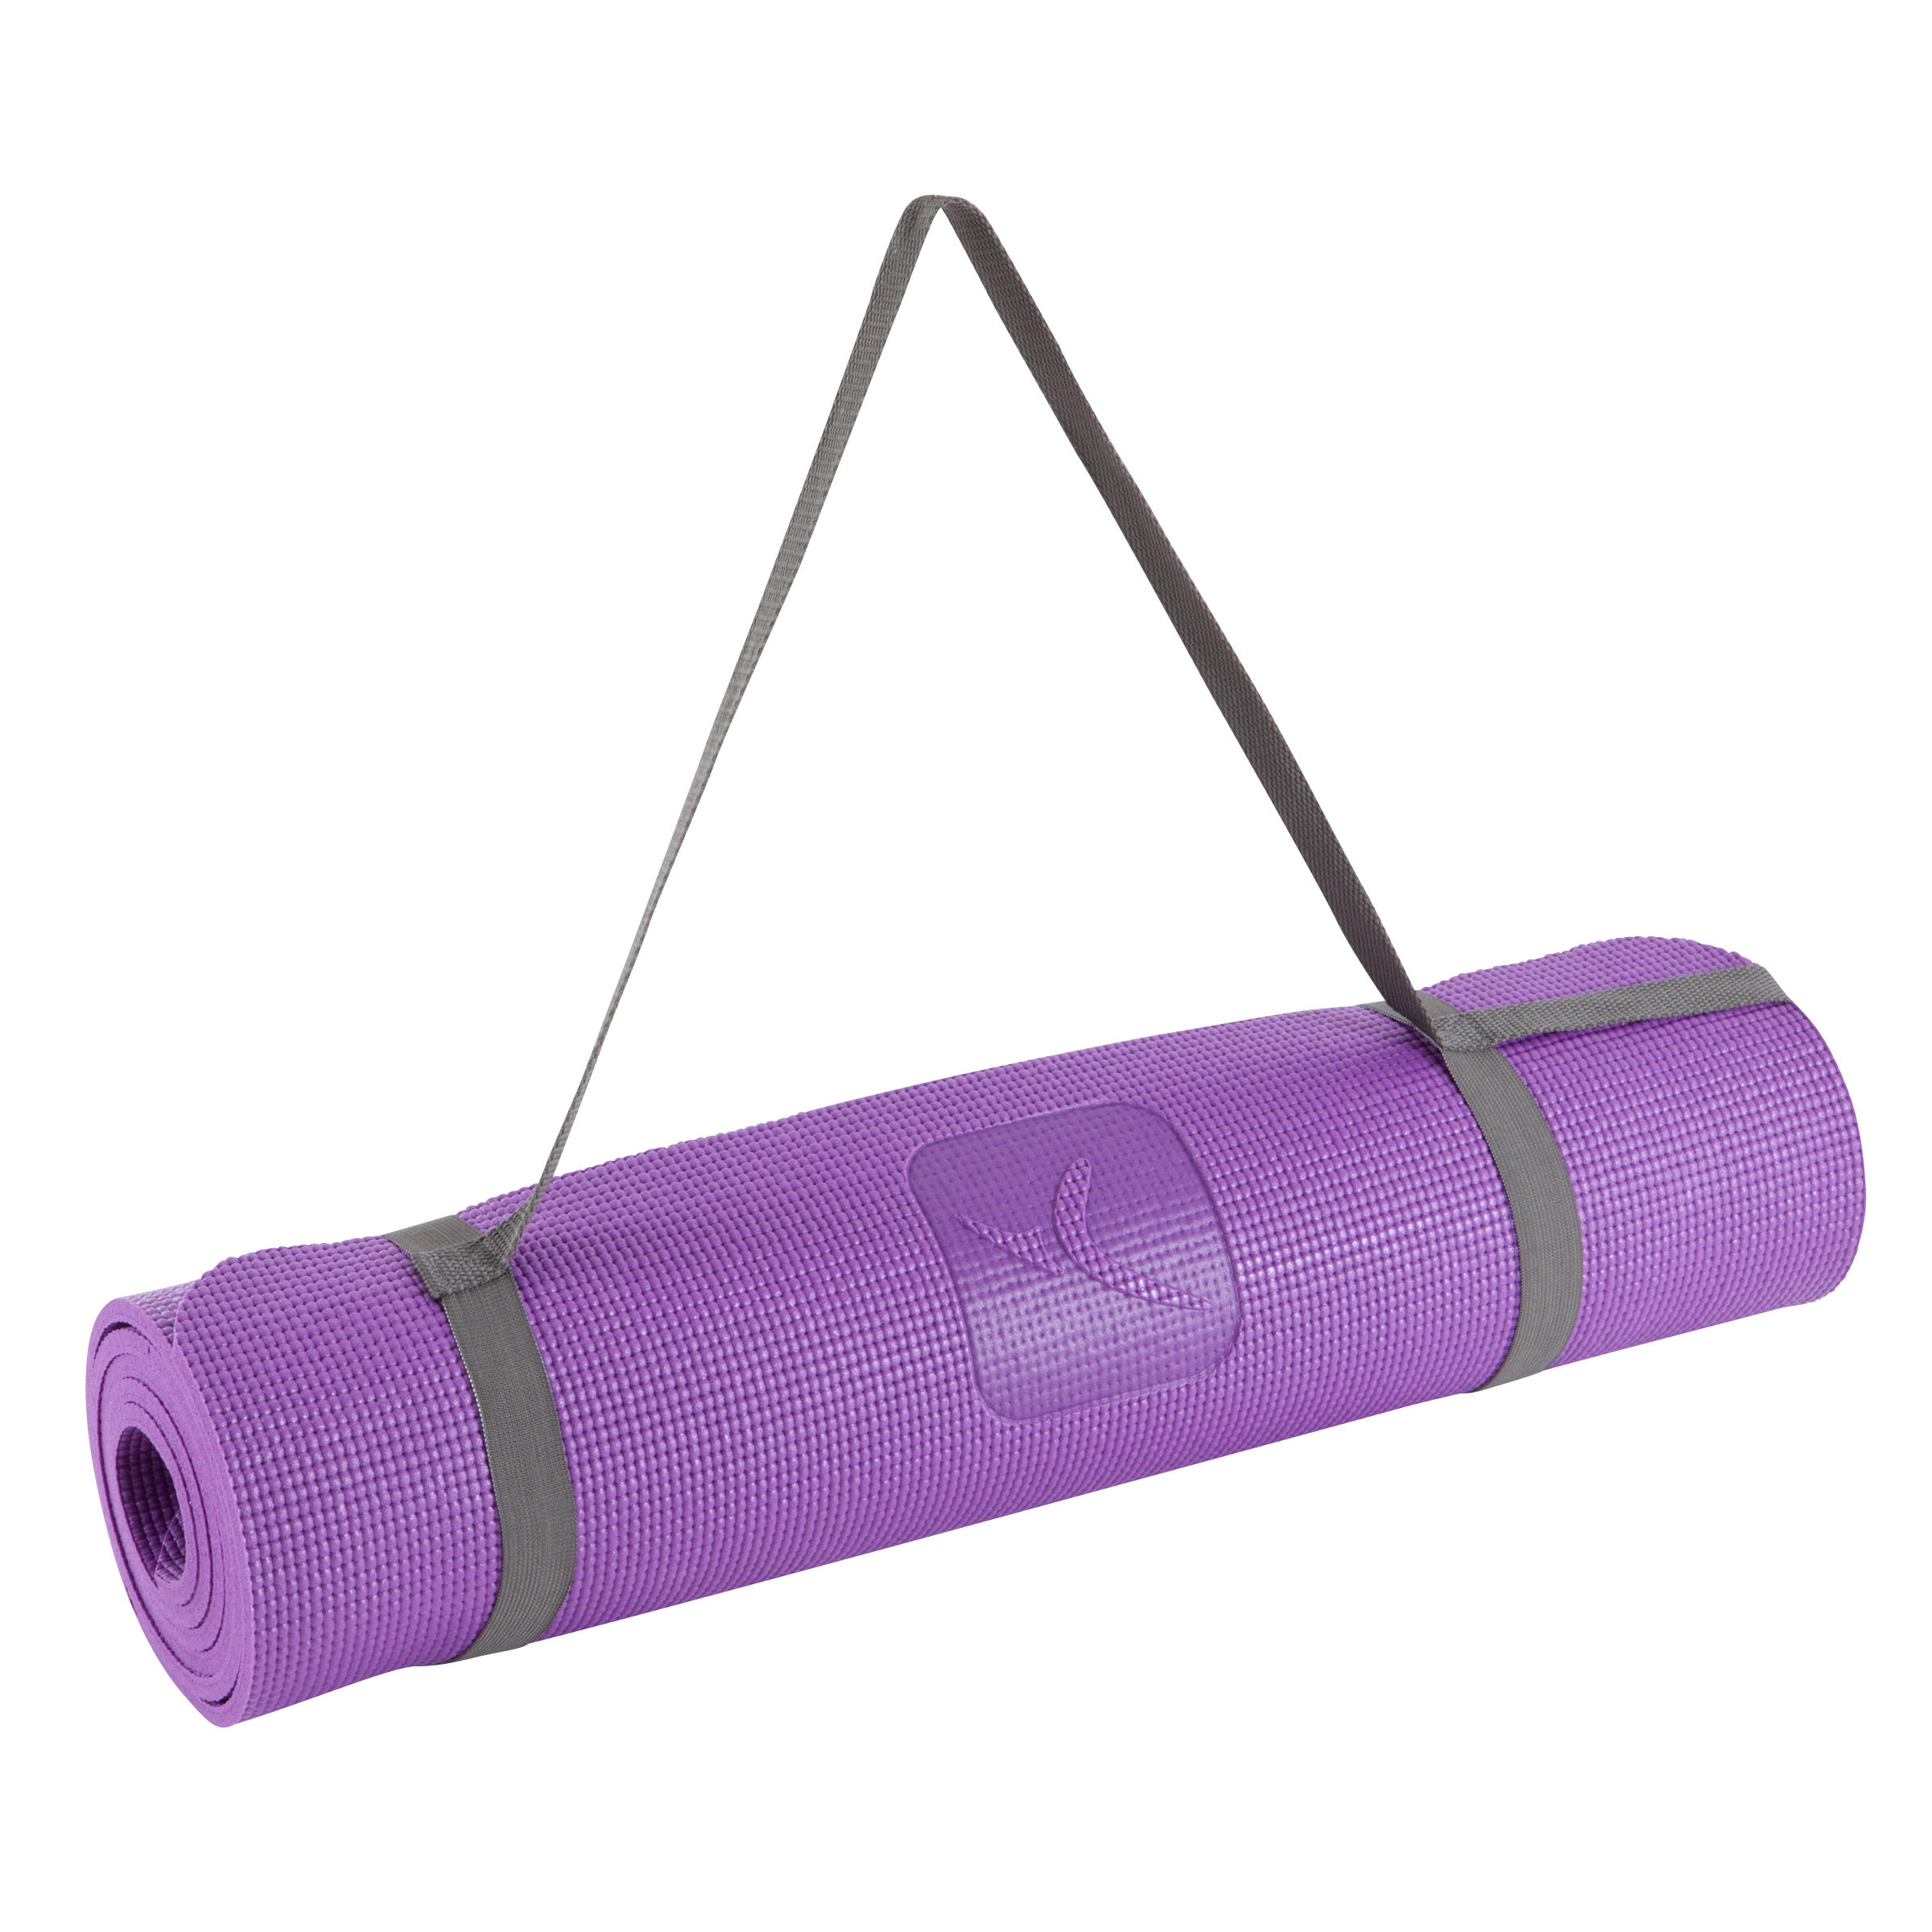 Gentle Yoga Mat 8 mm - Purple